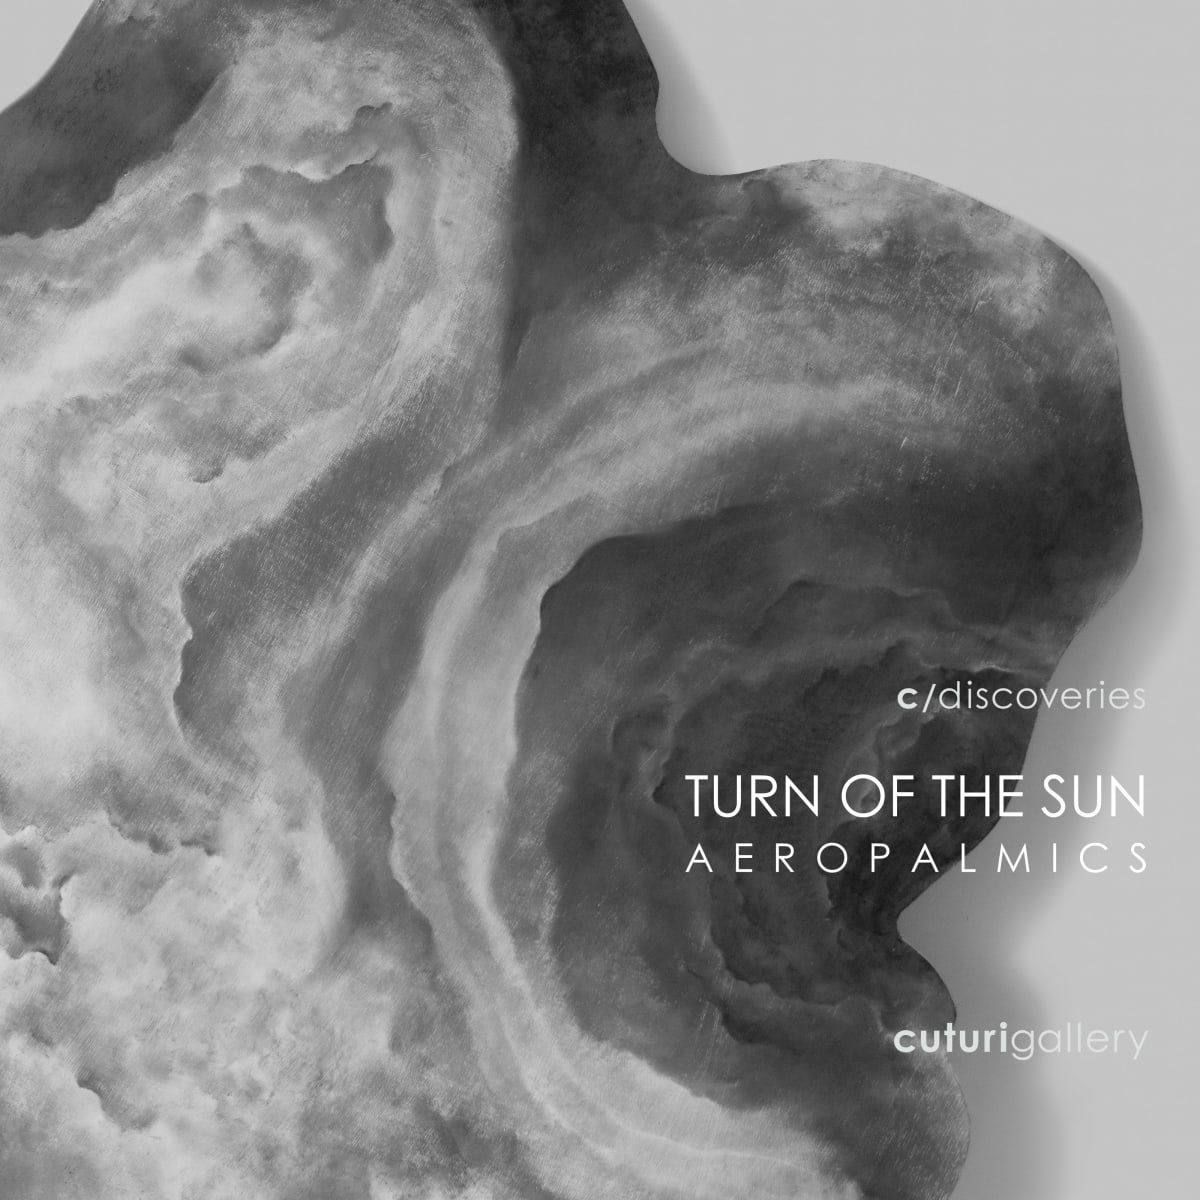 c/discoveries: Turn of the Sun, Aeropalmics